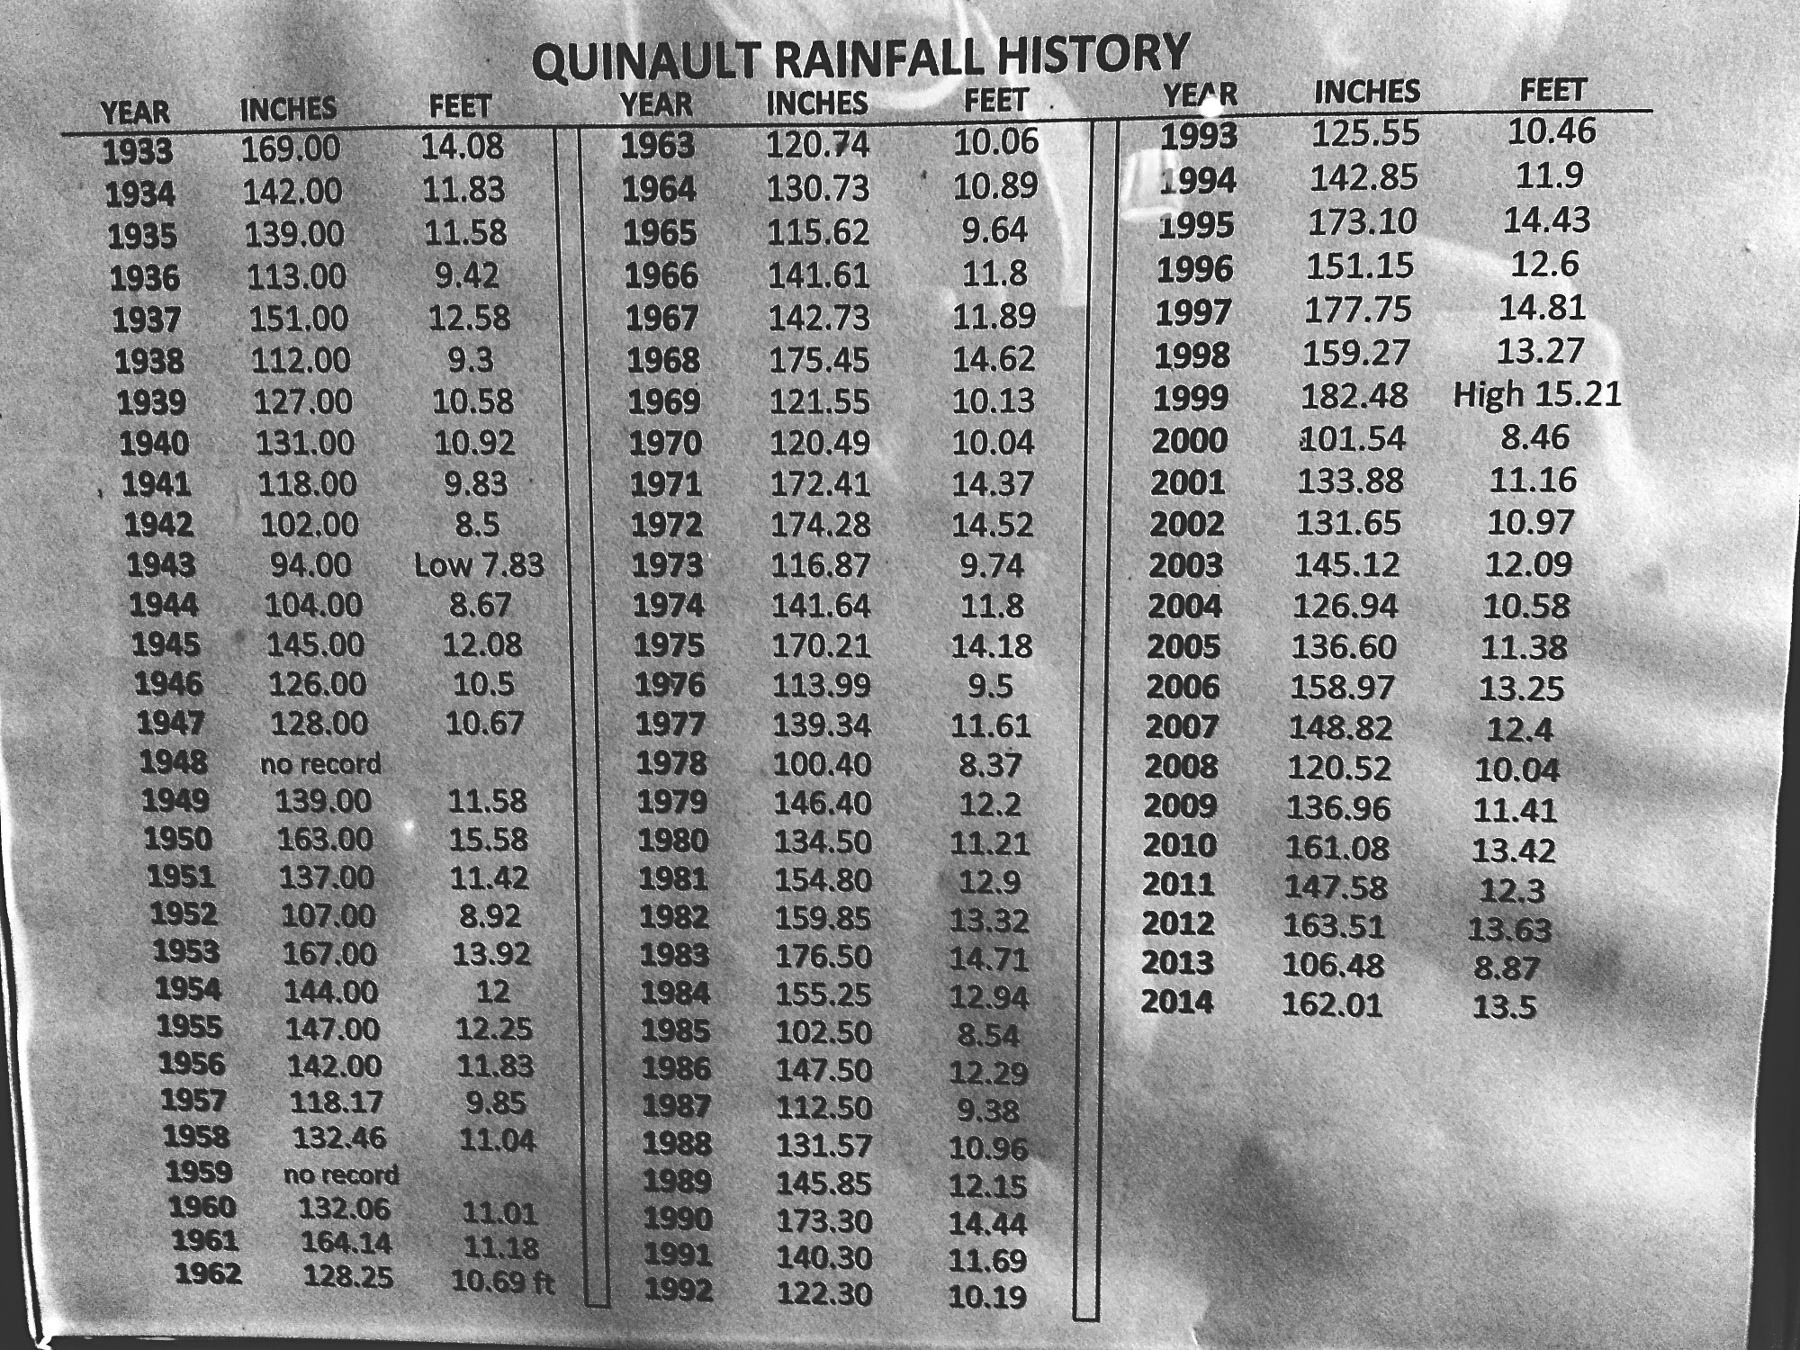 Rainfall data for Quinault